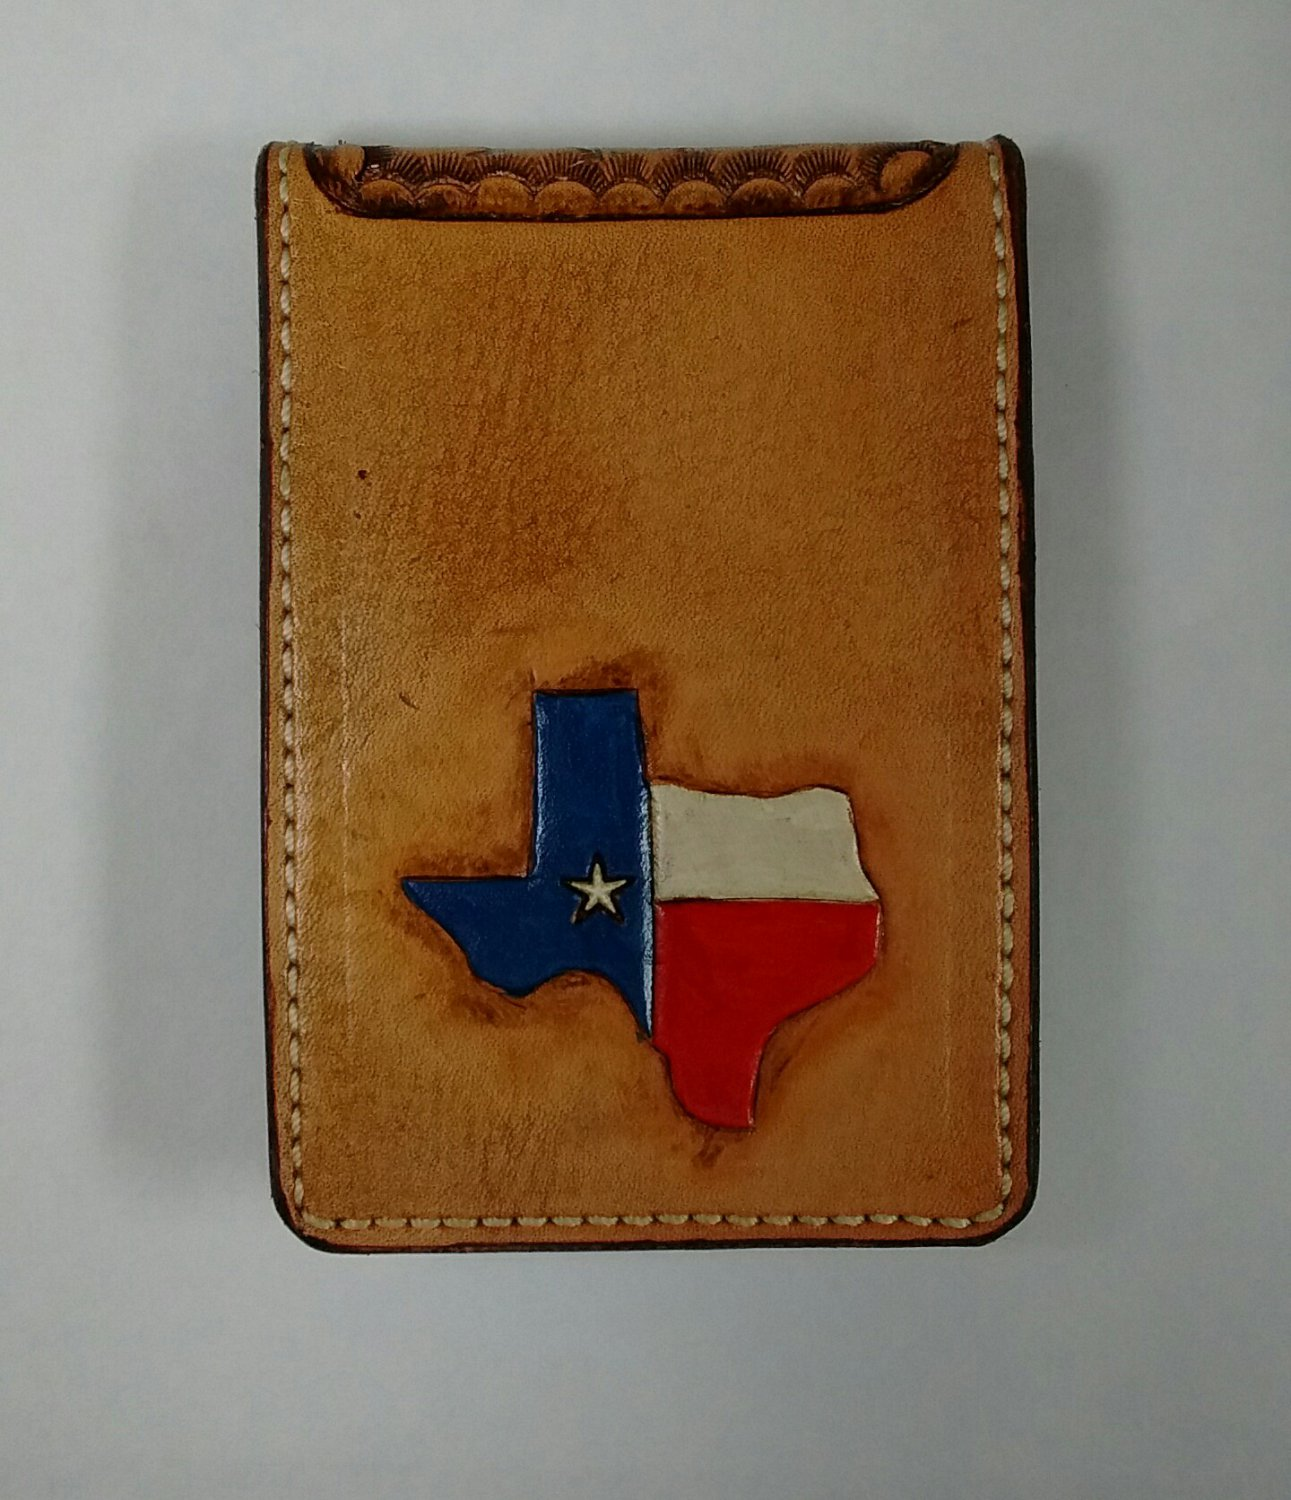 Money Fold Wallet, Texas Outline, Basket Weave, Tan Finish, Stitched WP0011